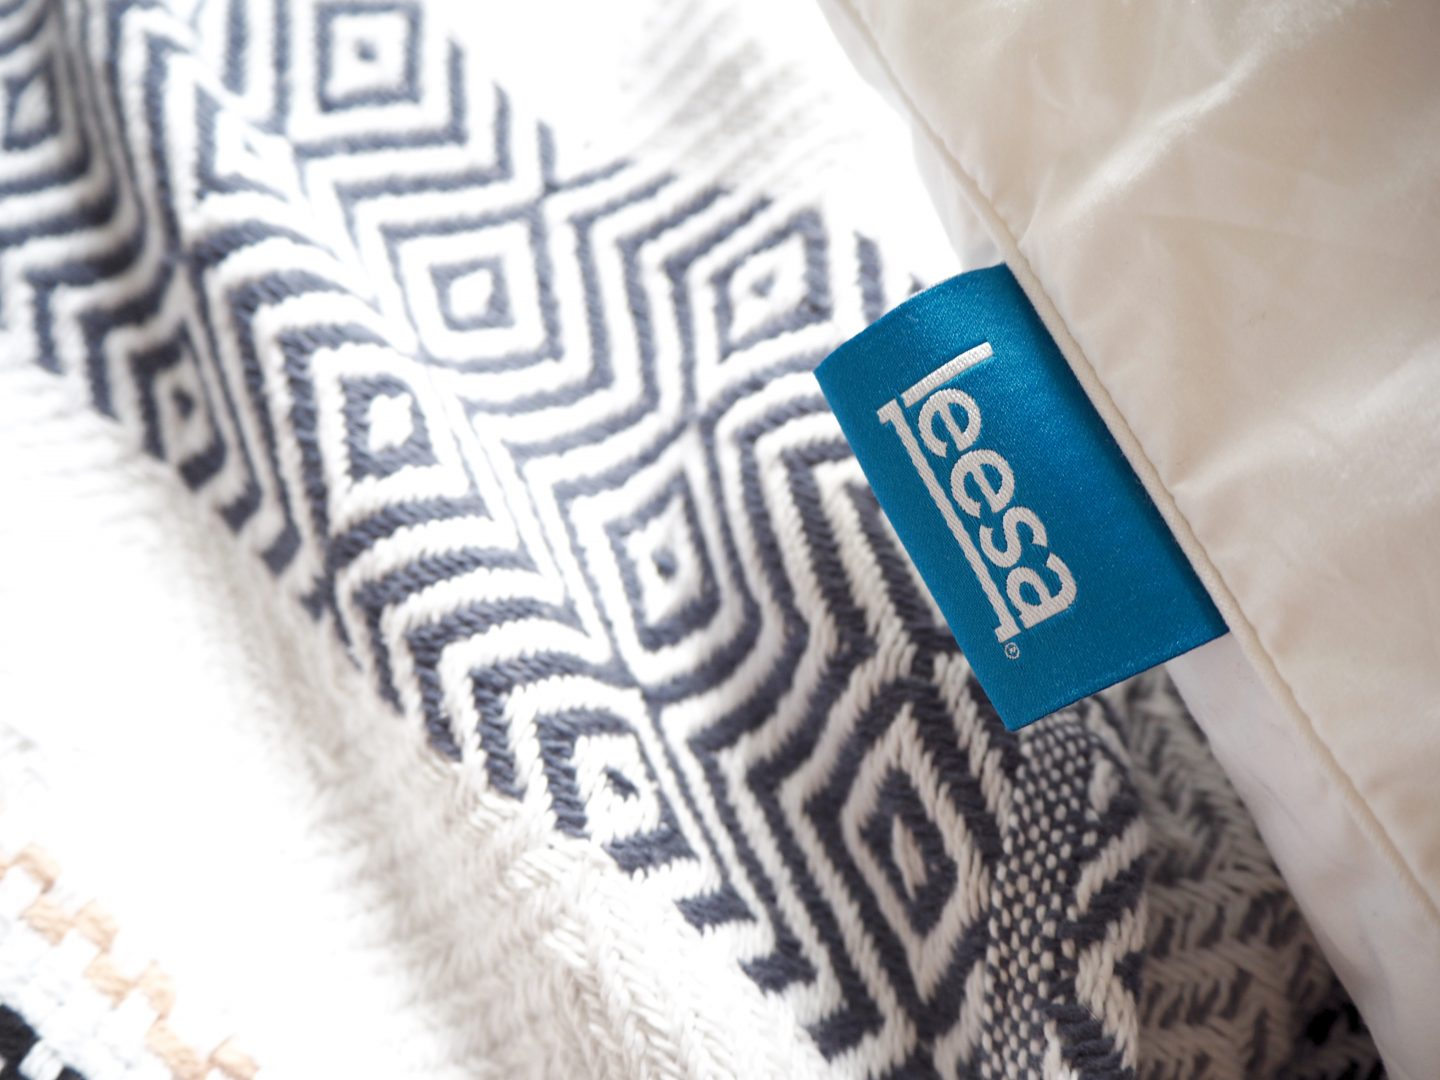 LEESA PILLOW REVIEW AND 18 MONTH MATTRESS UPDATE